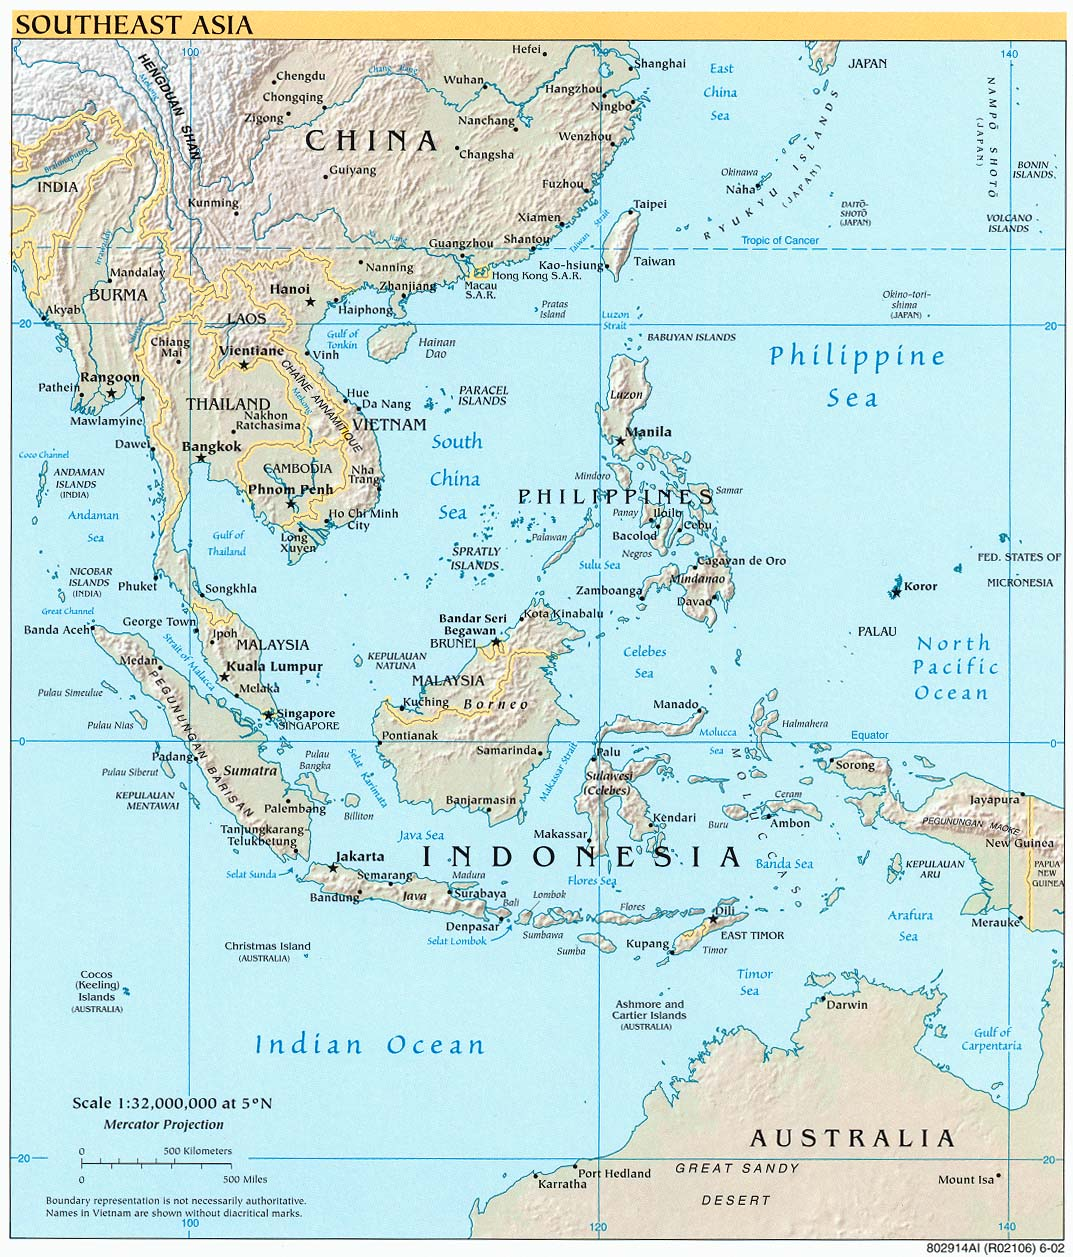 Southeast Asia Map Political.Maps Of Asia And Asia Countries Political Maps Administrative And